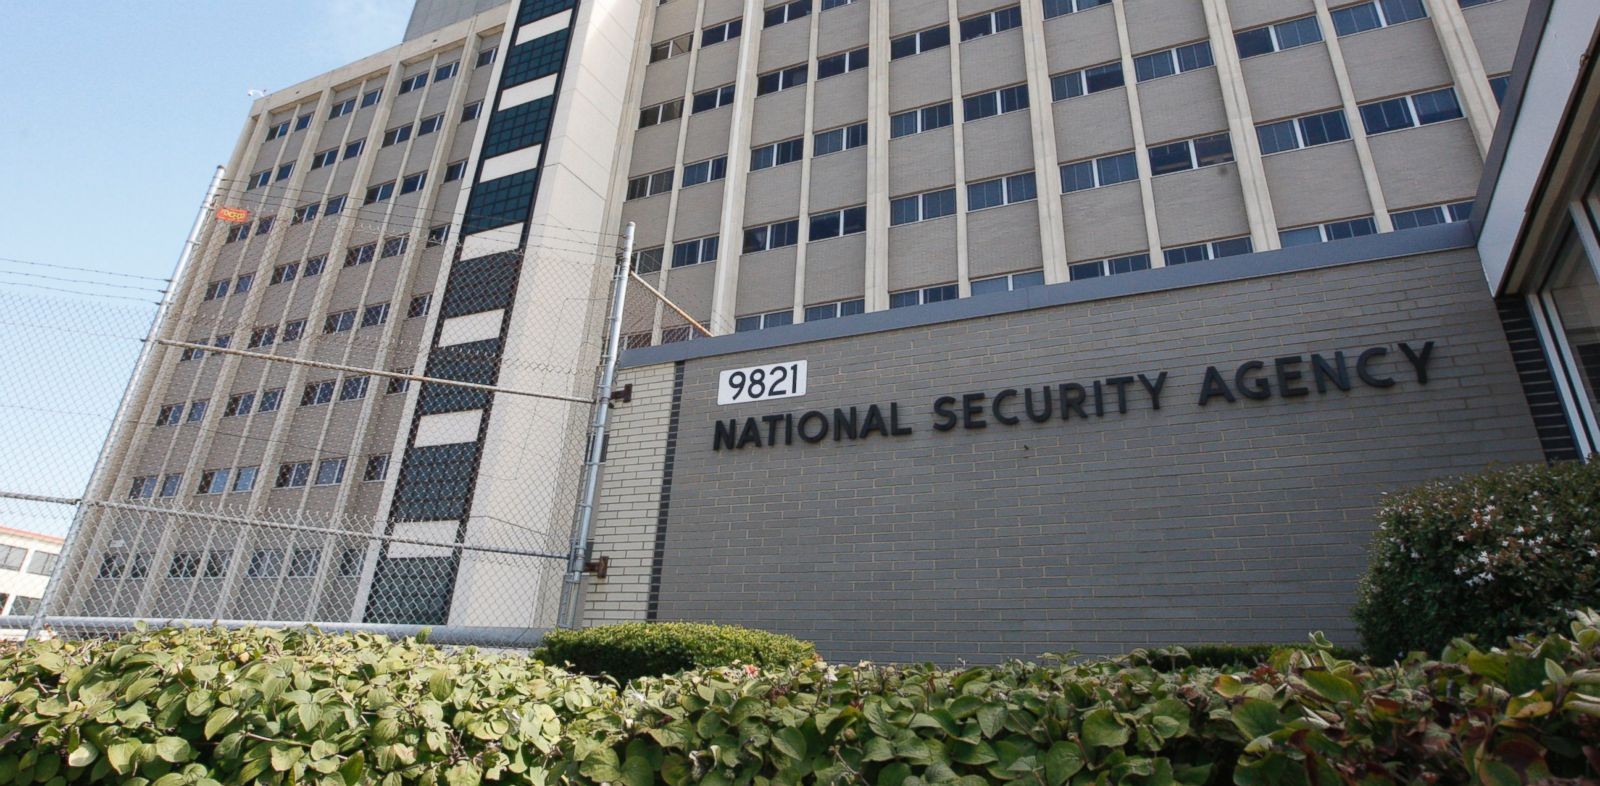 PHOTO: This Sept. 19, 2007 file photo shows the National Security Agency building at Fort Meade, Md.